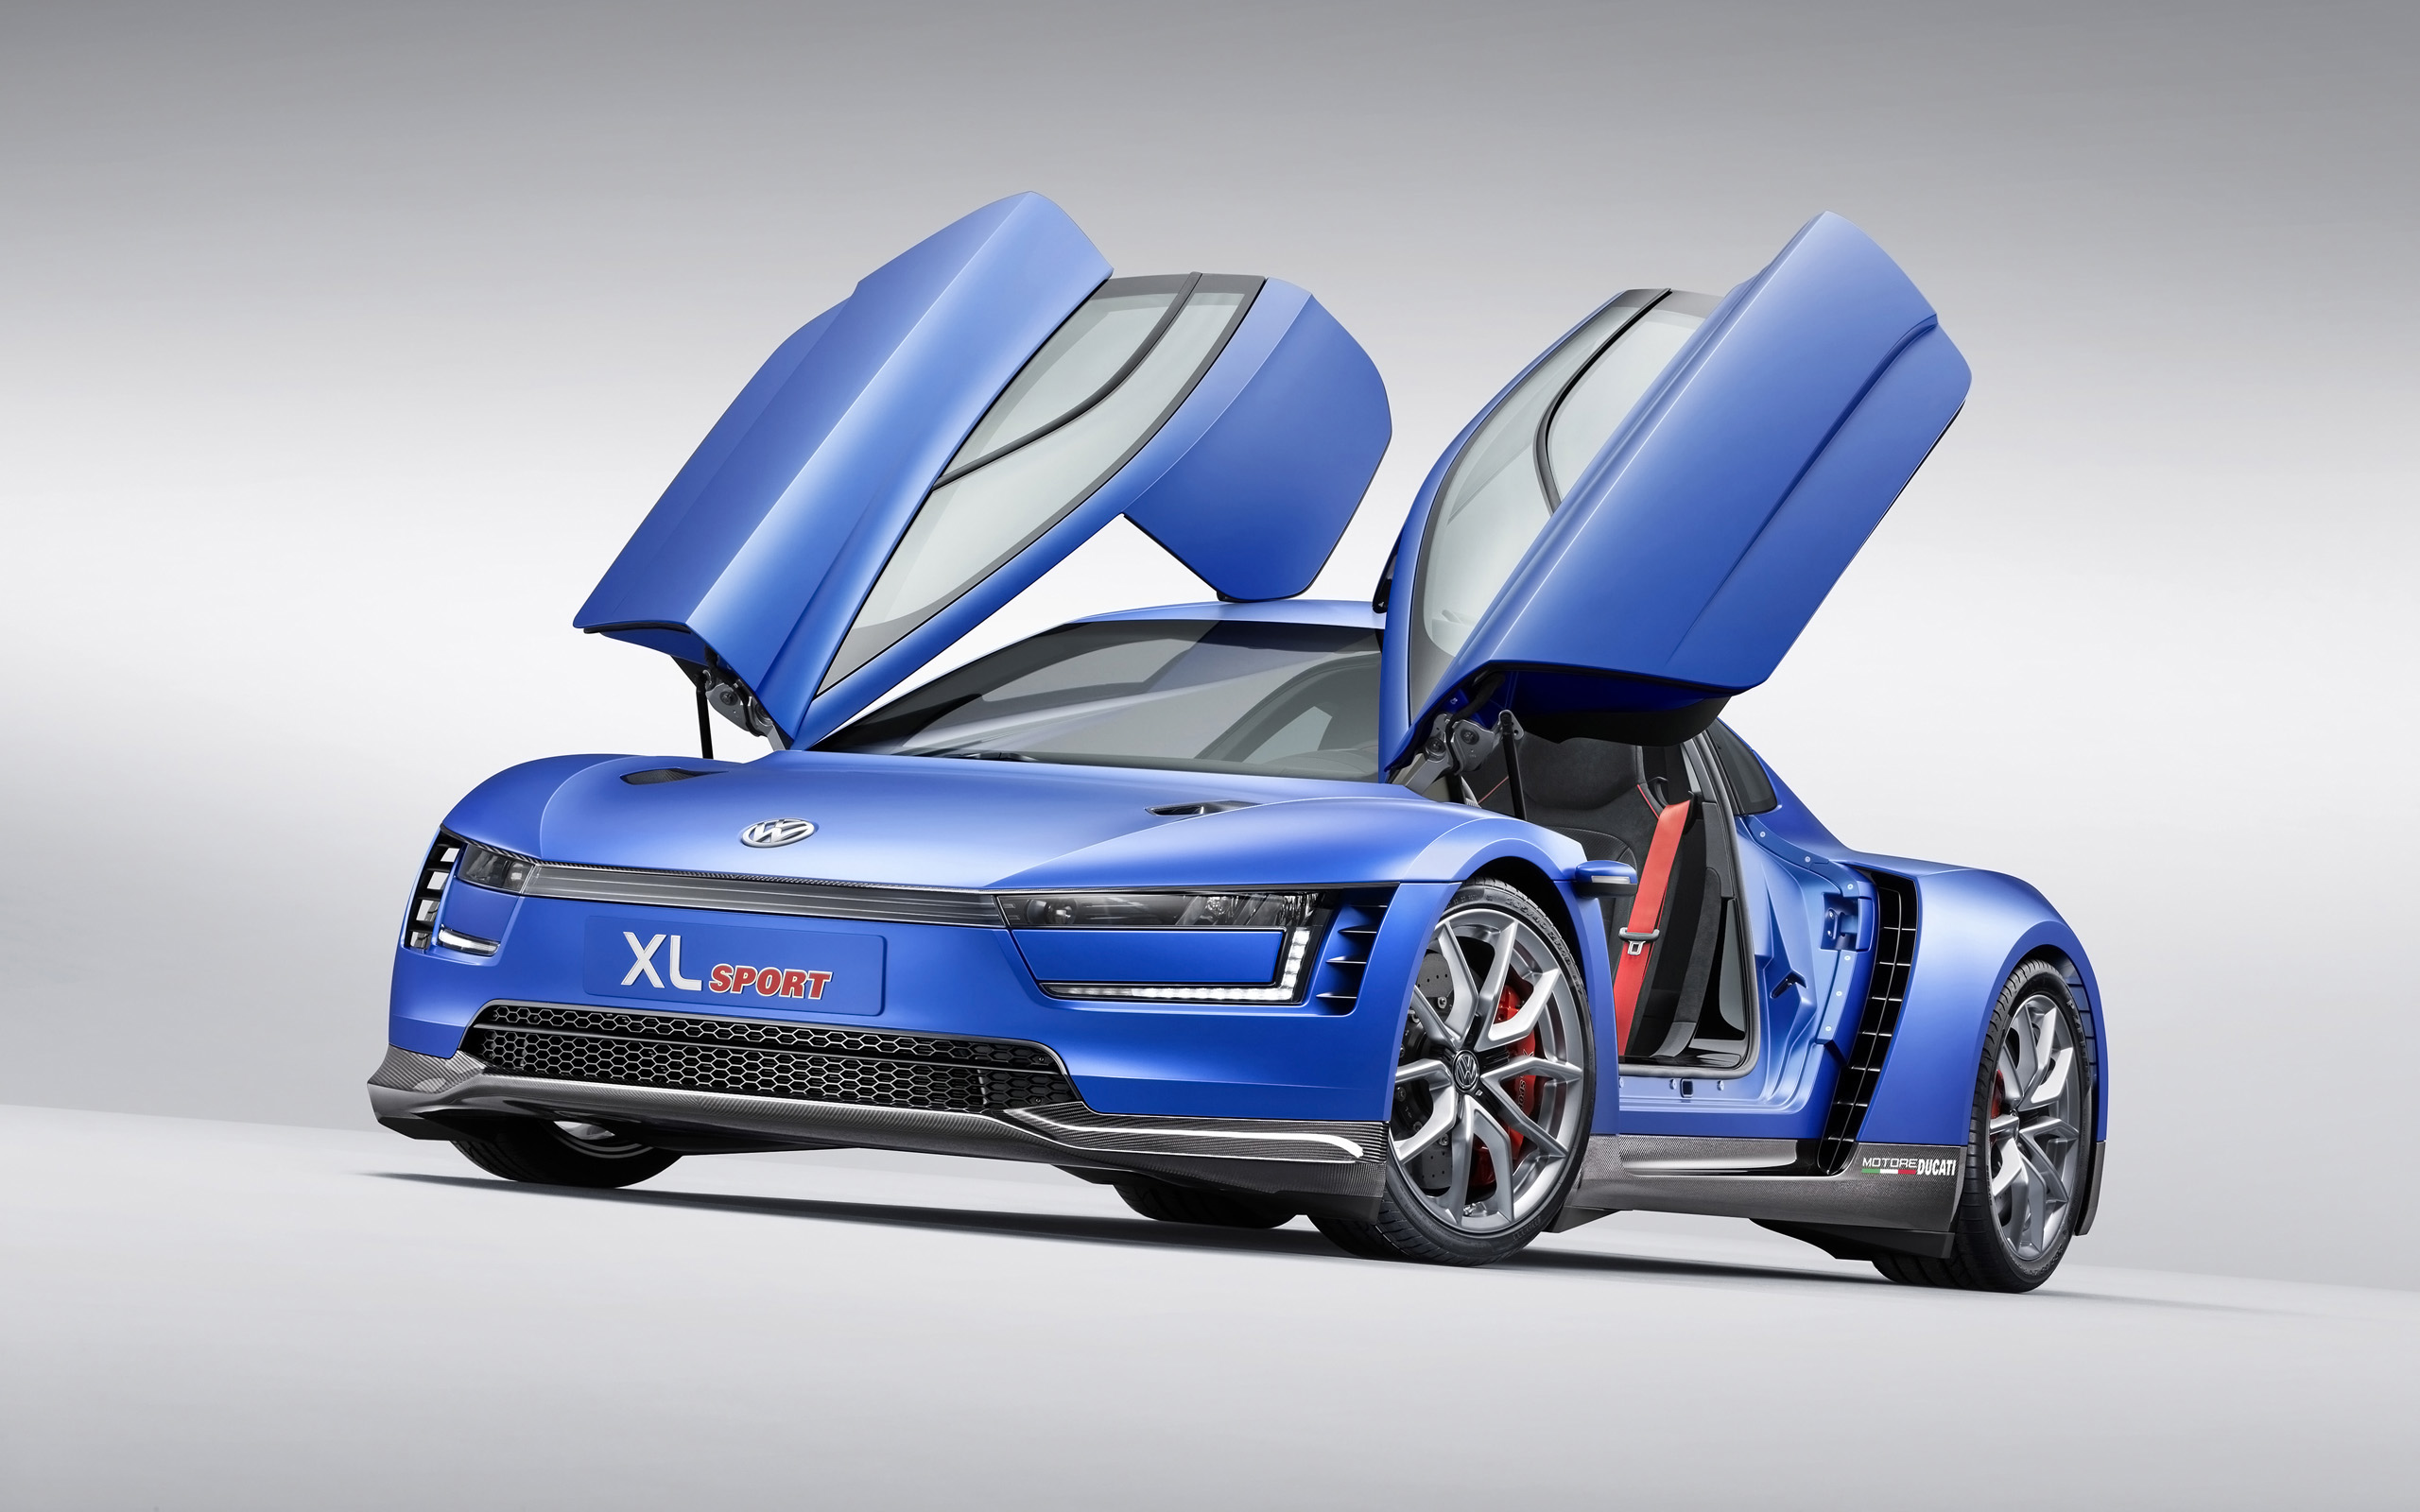 2014 volkswagen xl sport concept 3 wallpaper hd car wallpapers id 4863. Black Bedroom Furniture Sets. Home Design Ideas